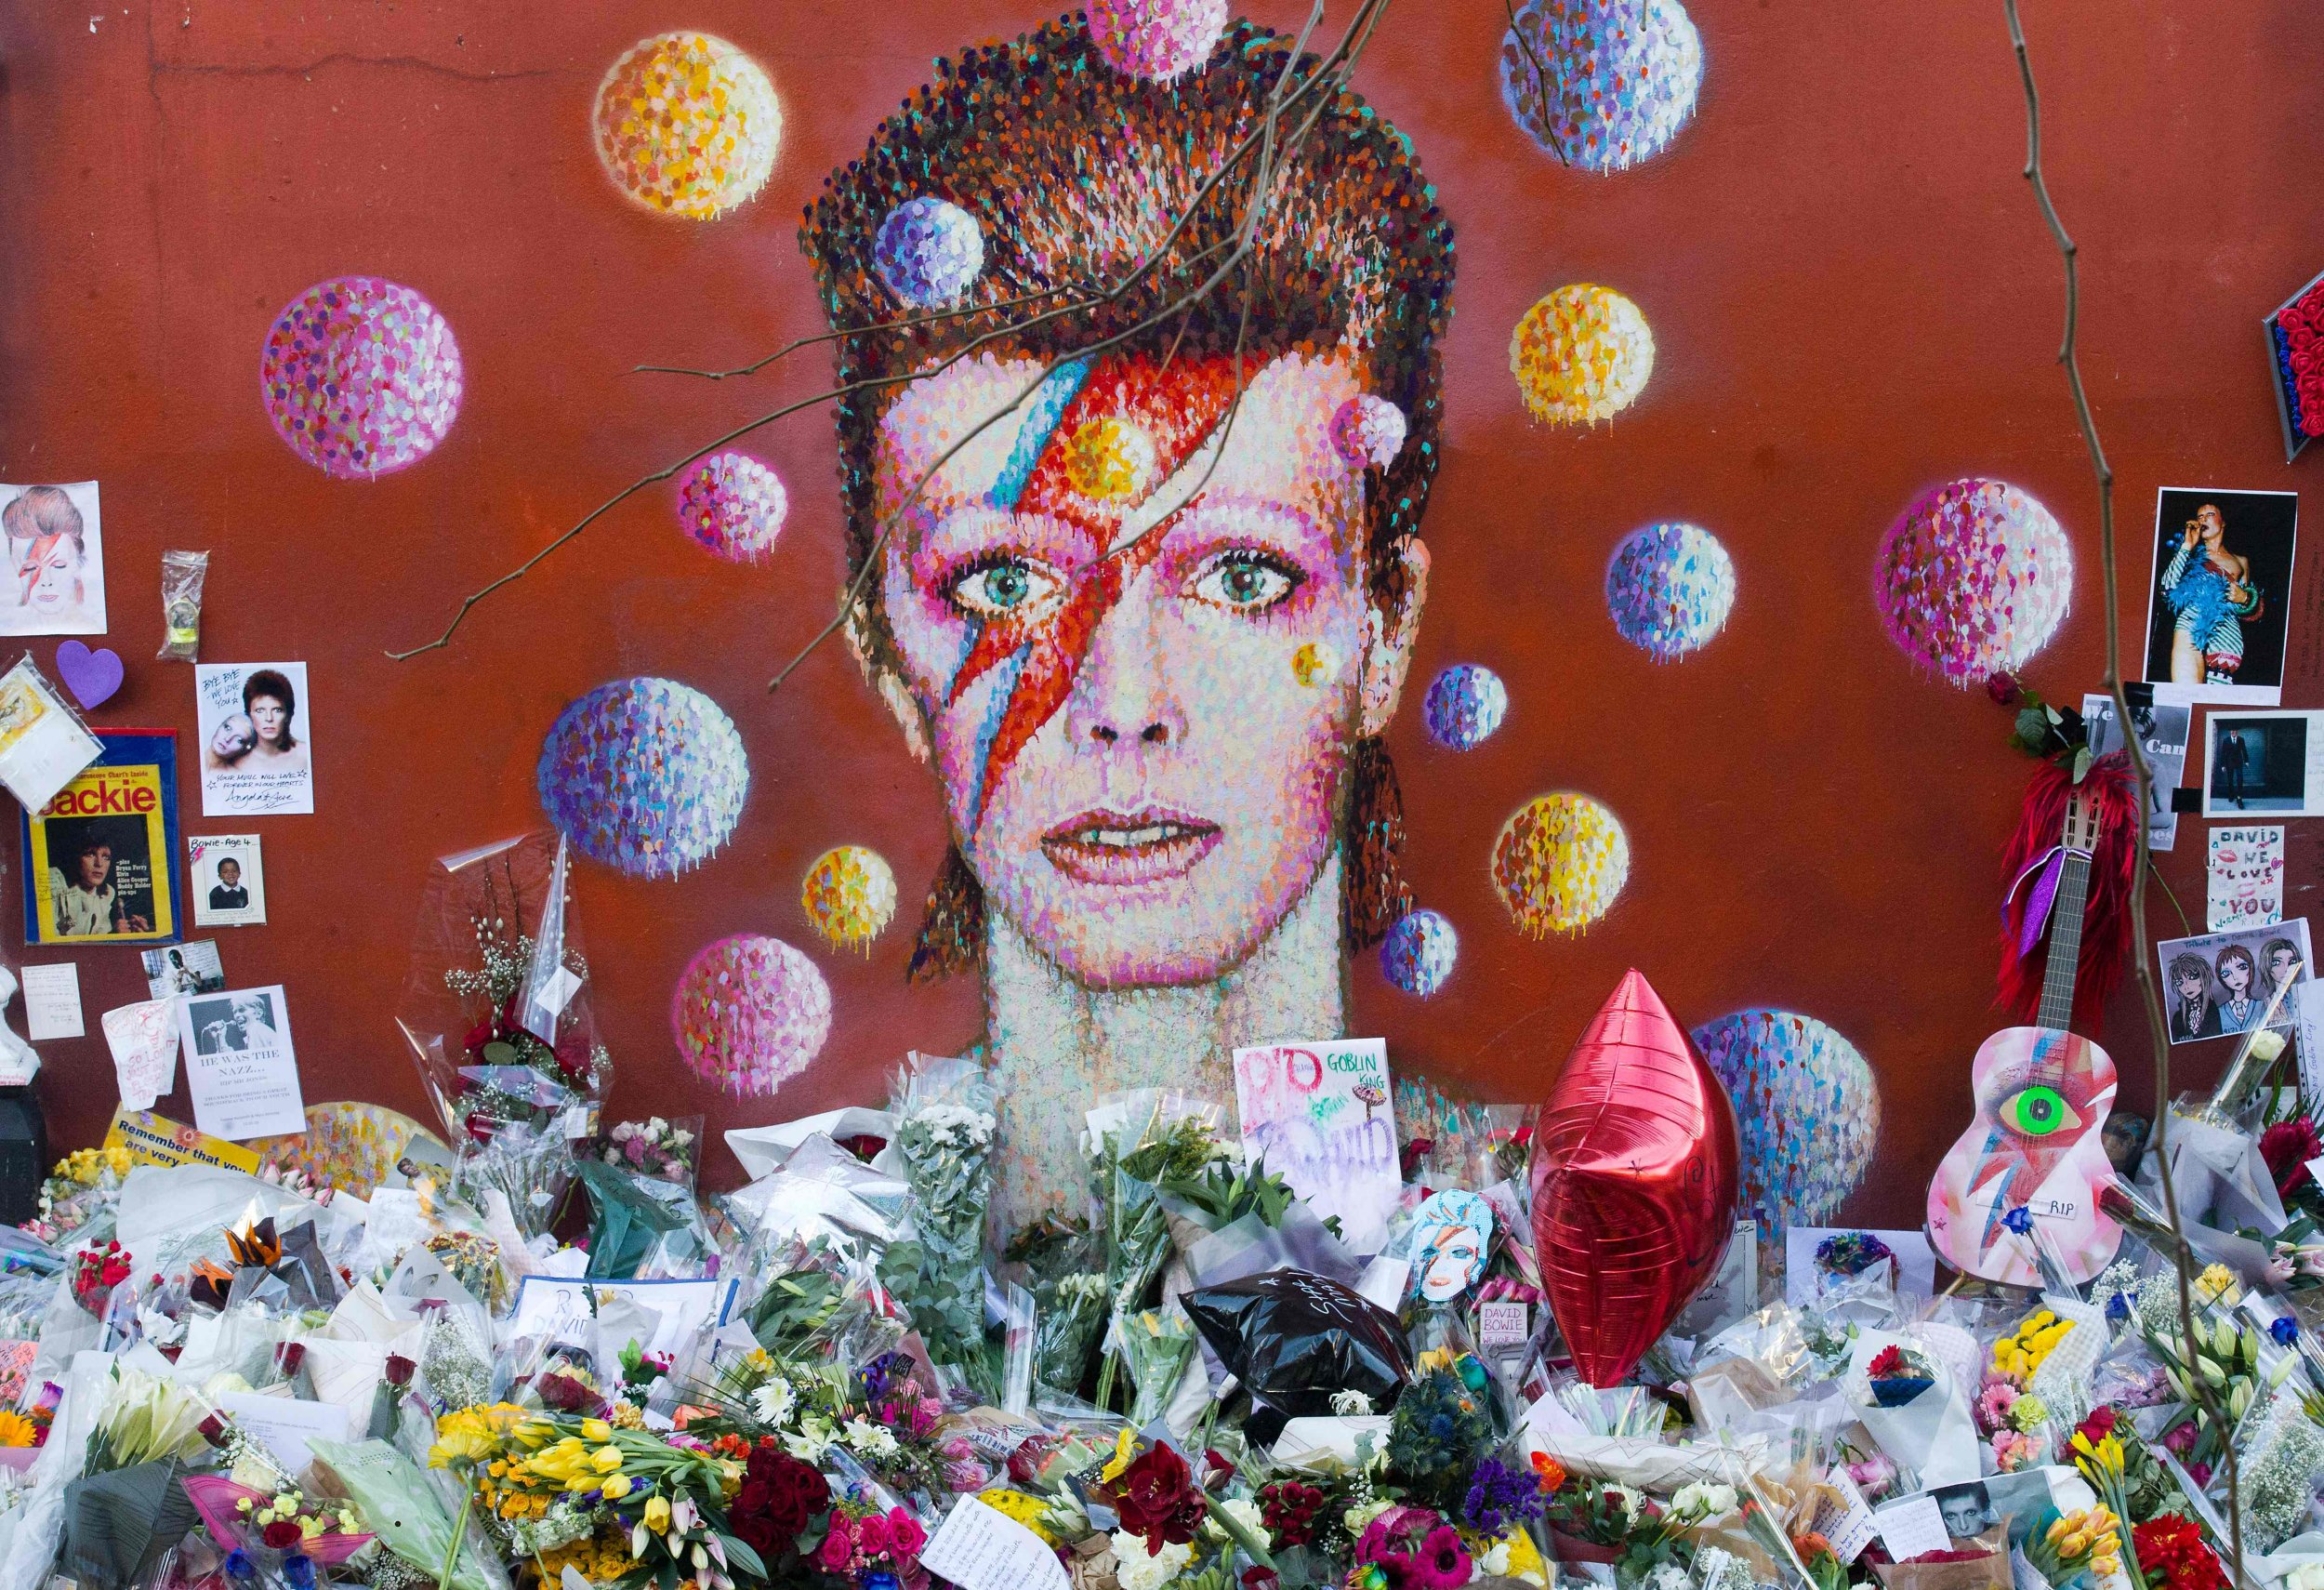 Fans still pay tribute to David Bowie at infamous Brixton mural two years after his death